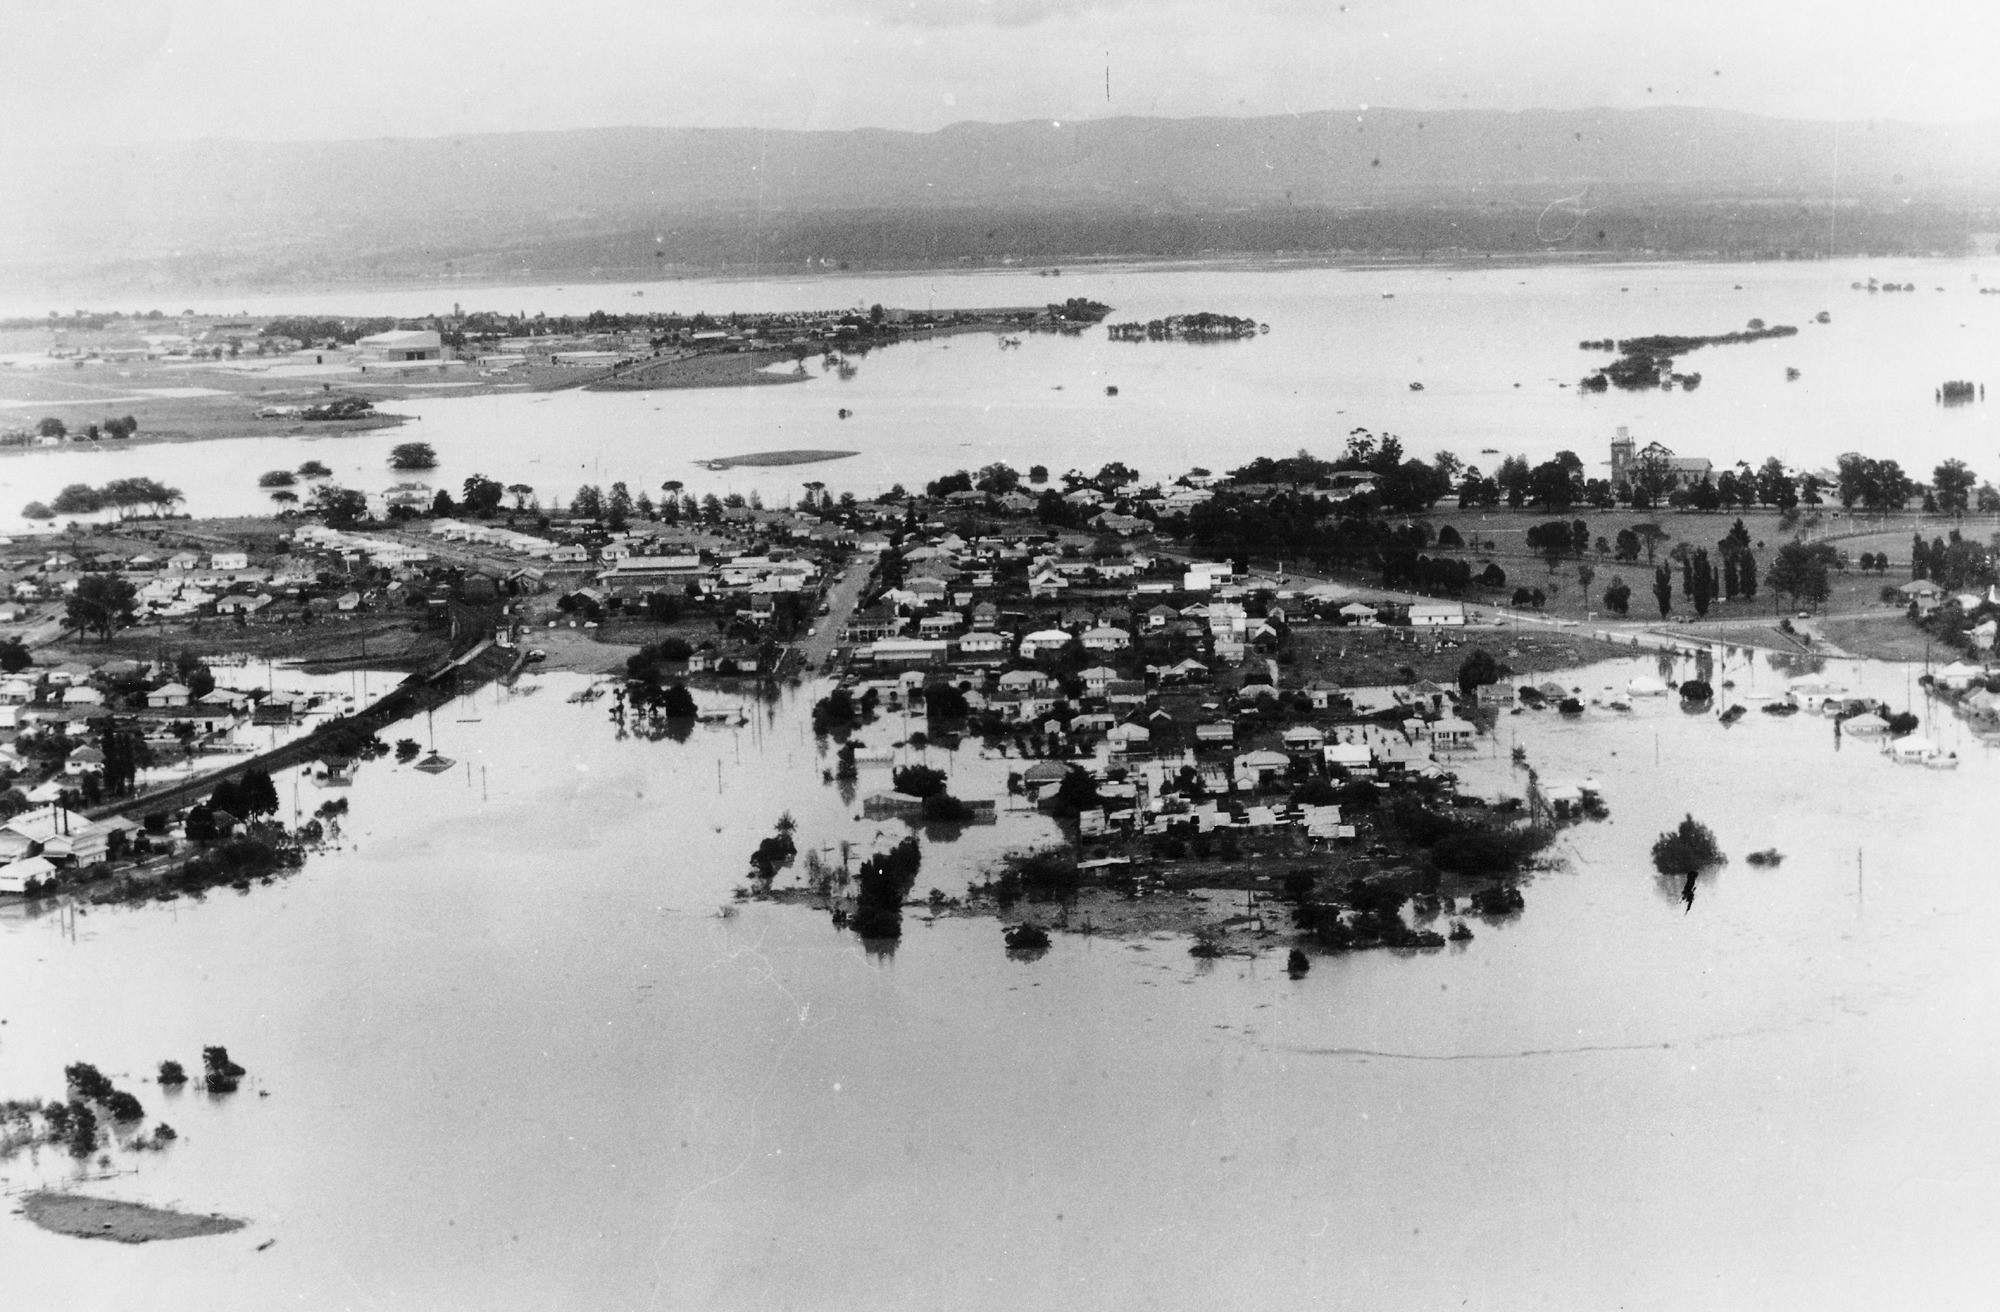 Aerial view of 1961 flood in Windsor